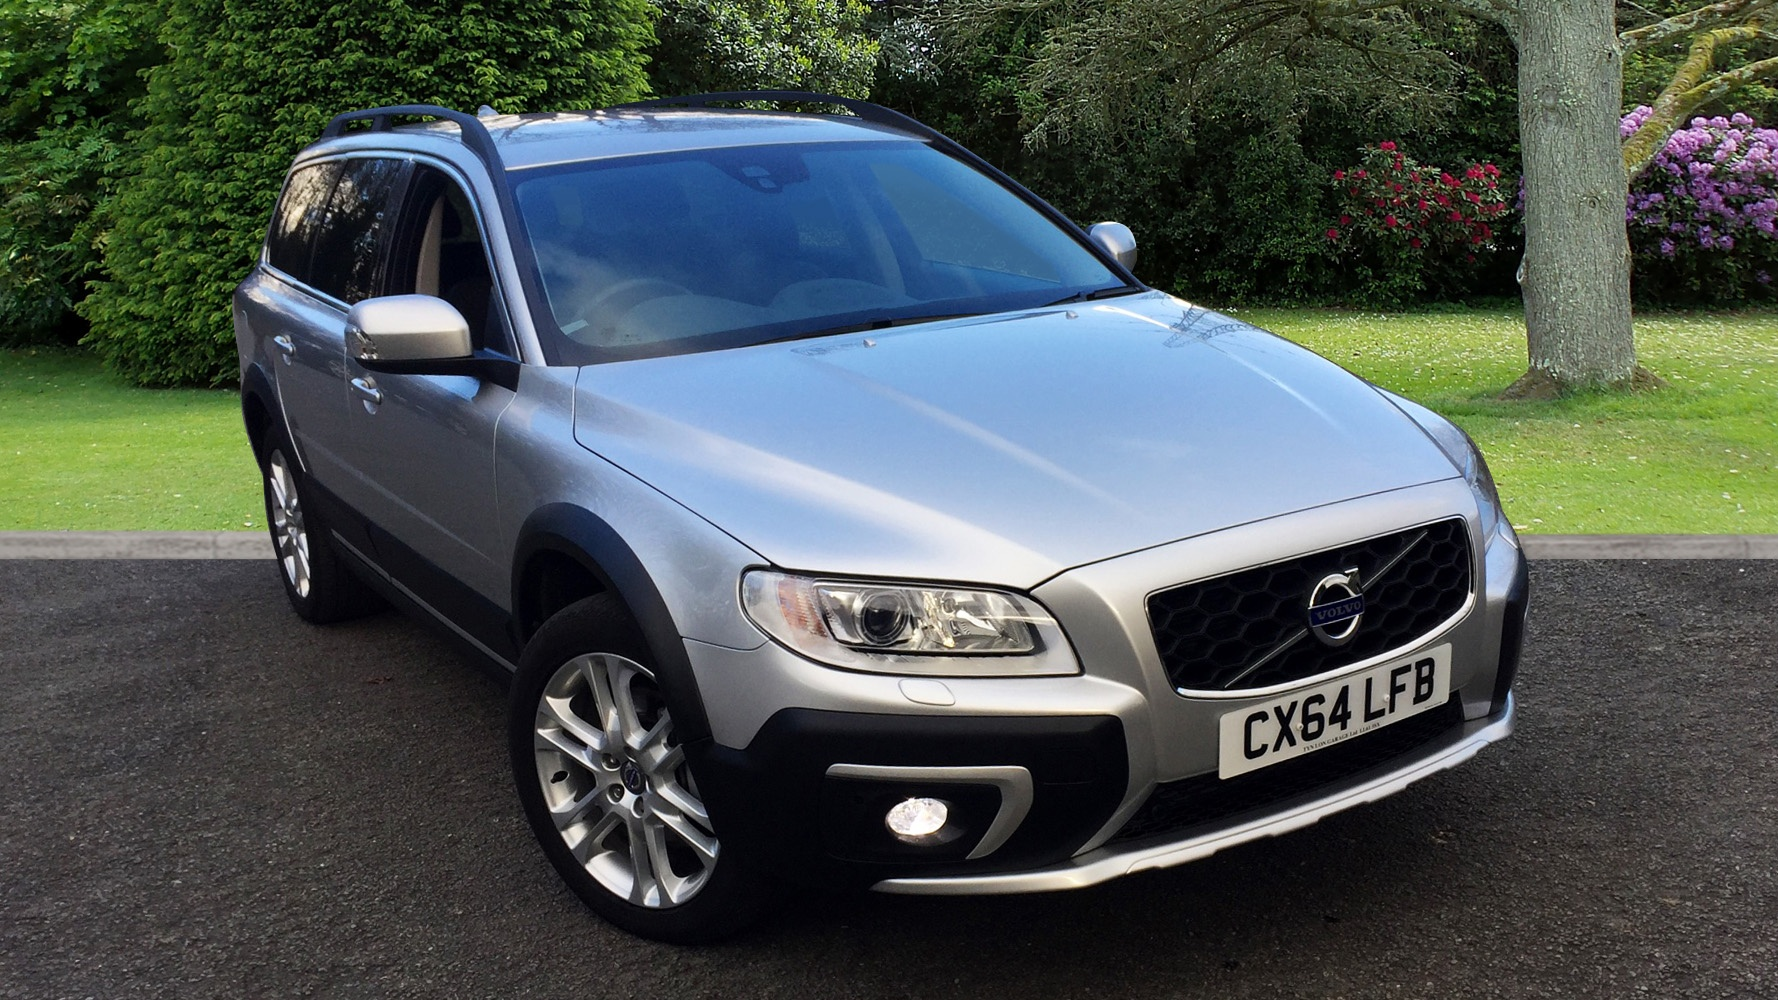 volvo xc70 d5 2 4d awd se lux nav family pack leather interior sat nav used vehicle by tyn. Black Bedroom Furniture Sets. Home Design Ideas